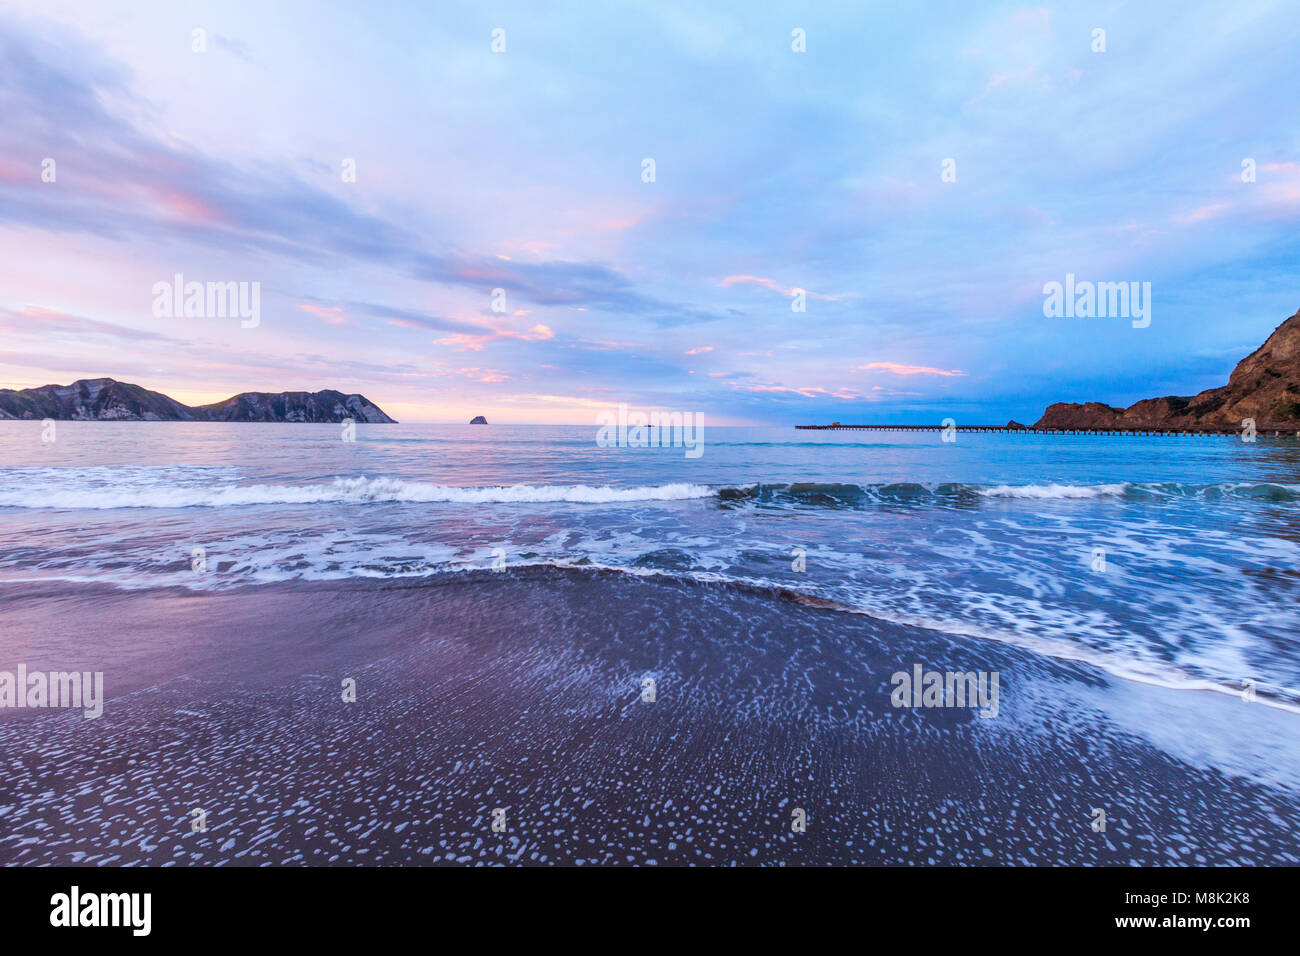 Tolaga Bay and New Zealand's Longest Pier - Stock Image